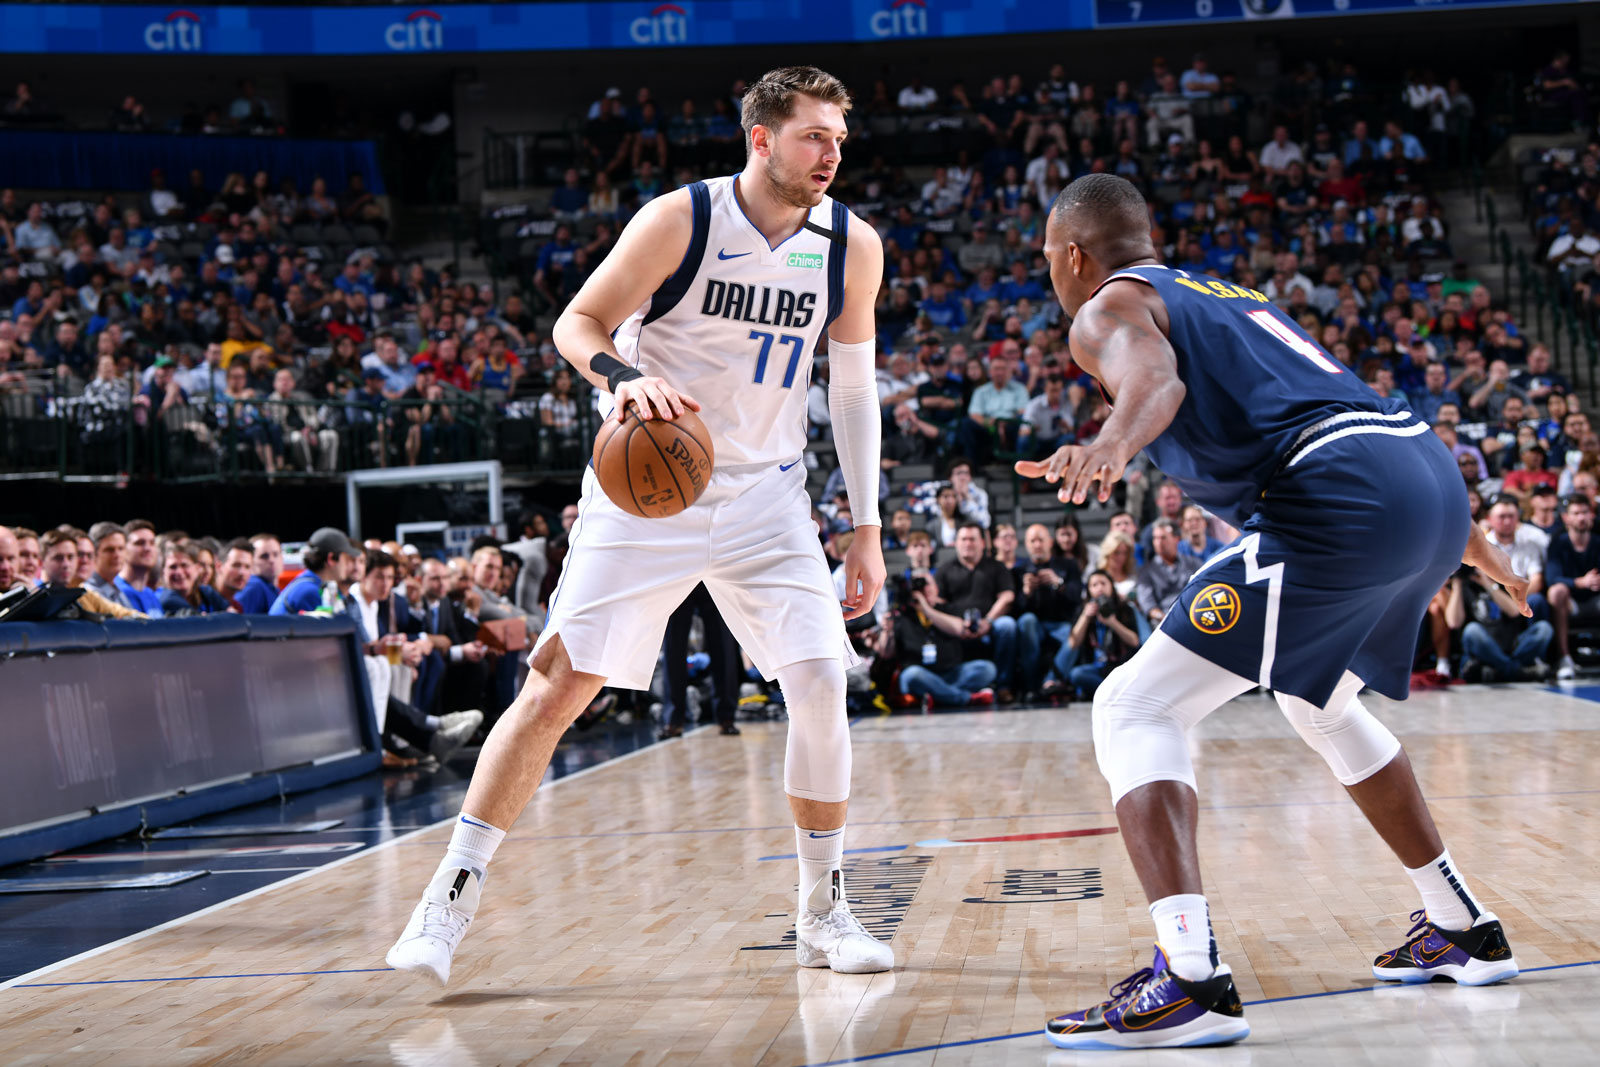 Luka Doncic #77 of the Dallas Mavericks handles the ball against the Denver Nuggets on March 11, 2020 at the American Airlines Center in Dallas, Texas